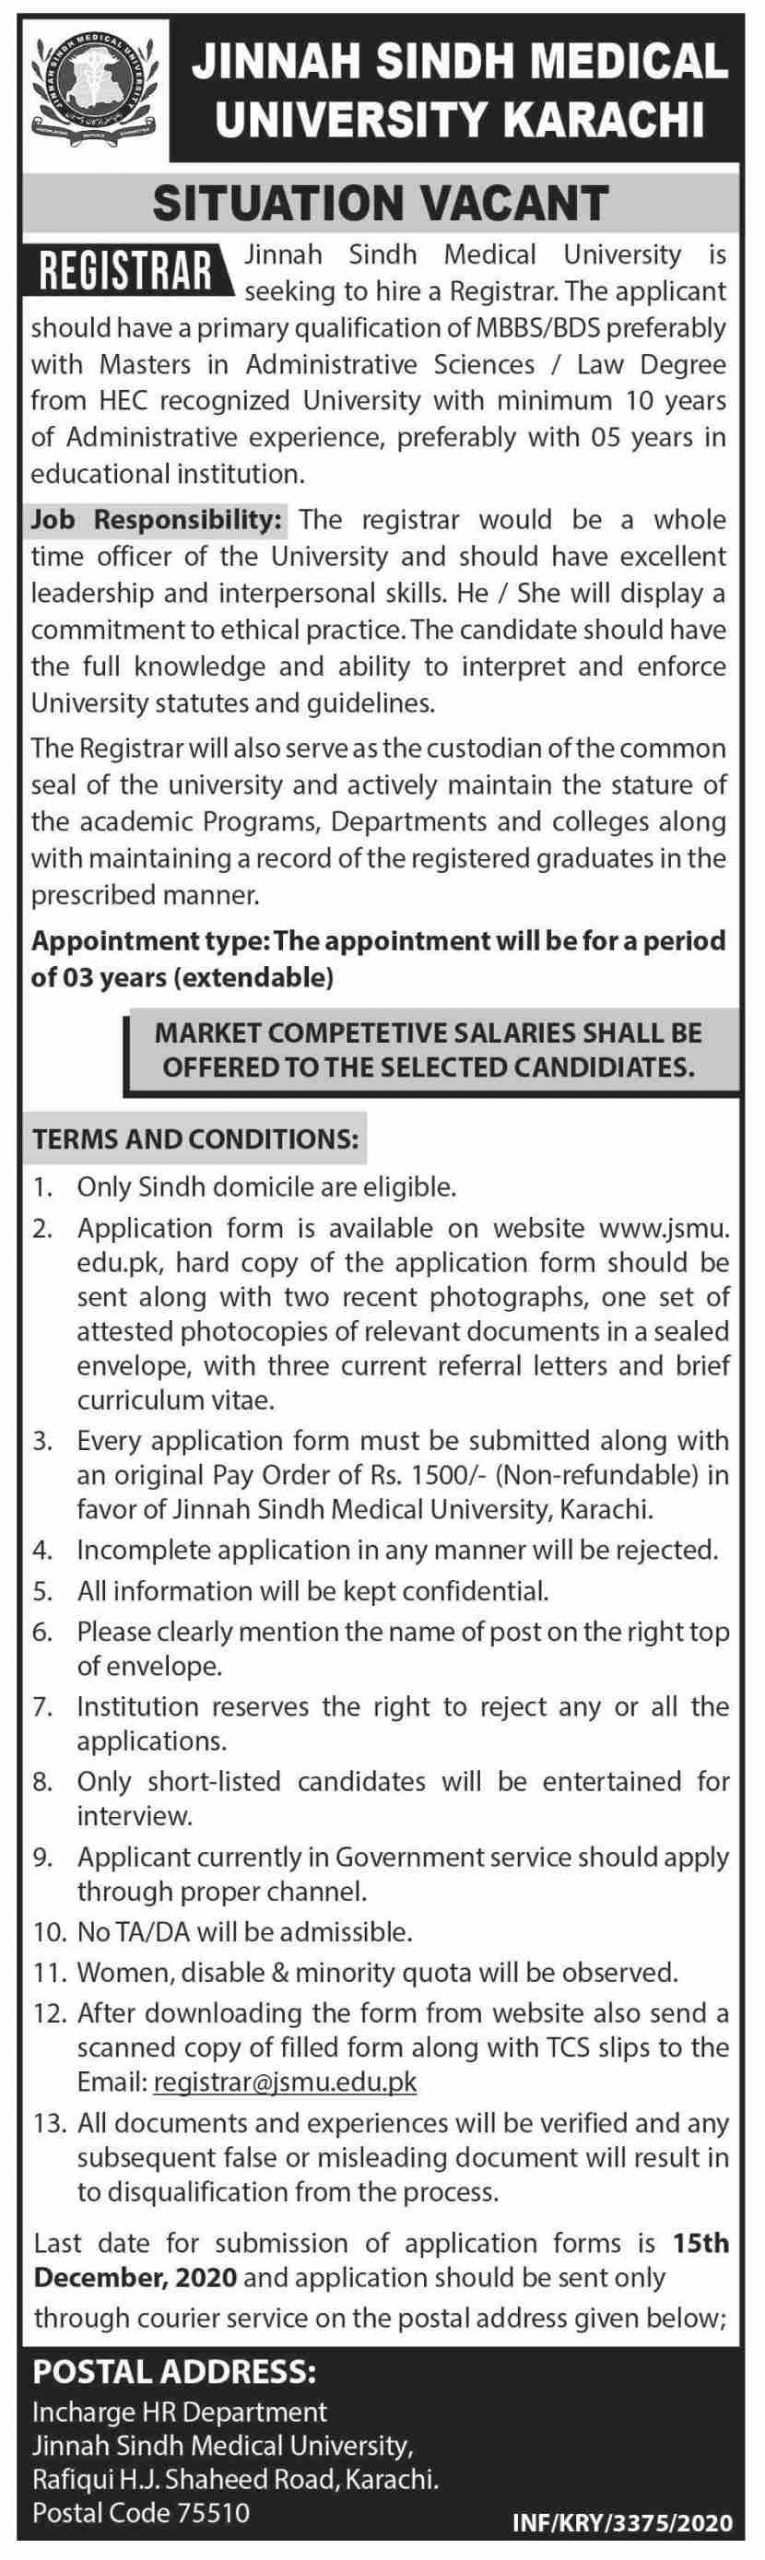 Jinnah Sindh Medical University Karachi Jobs November 2020